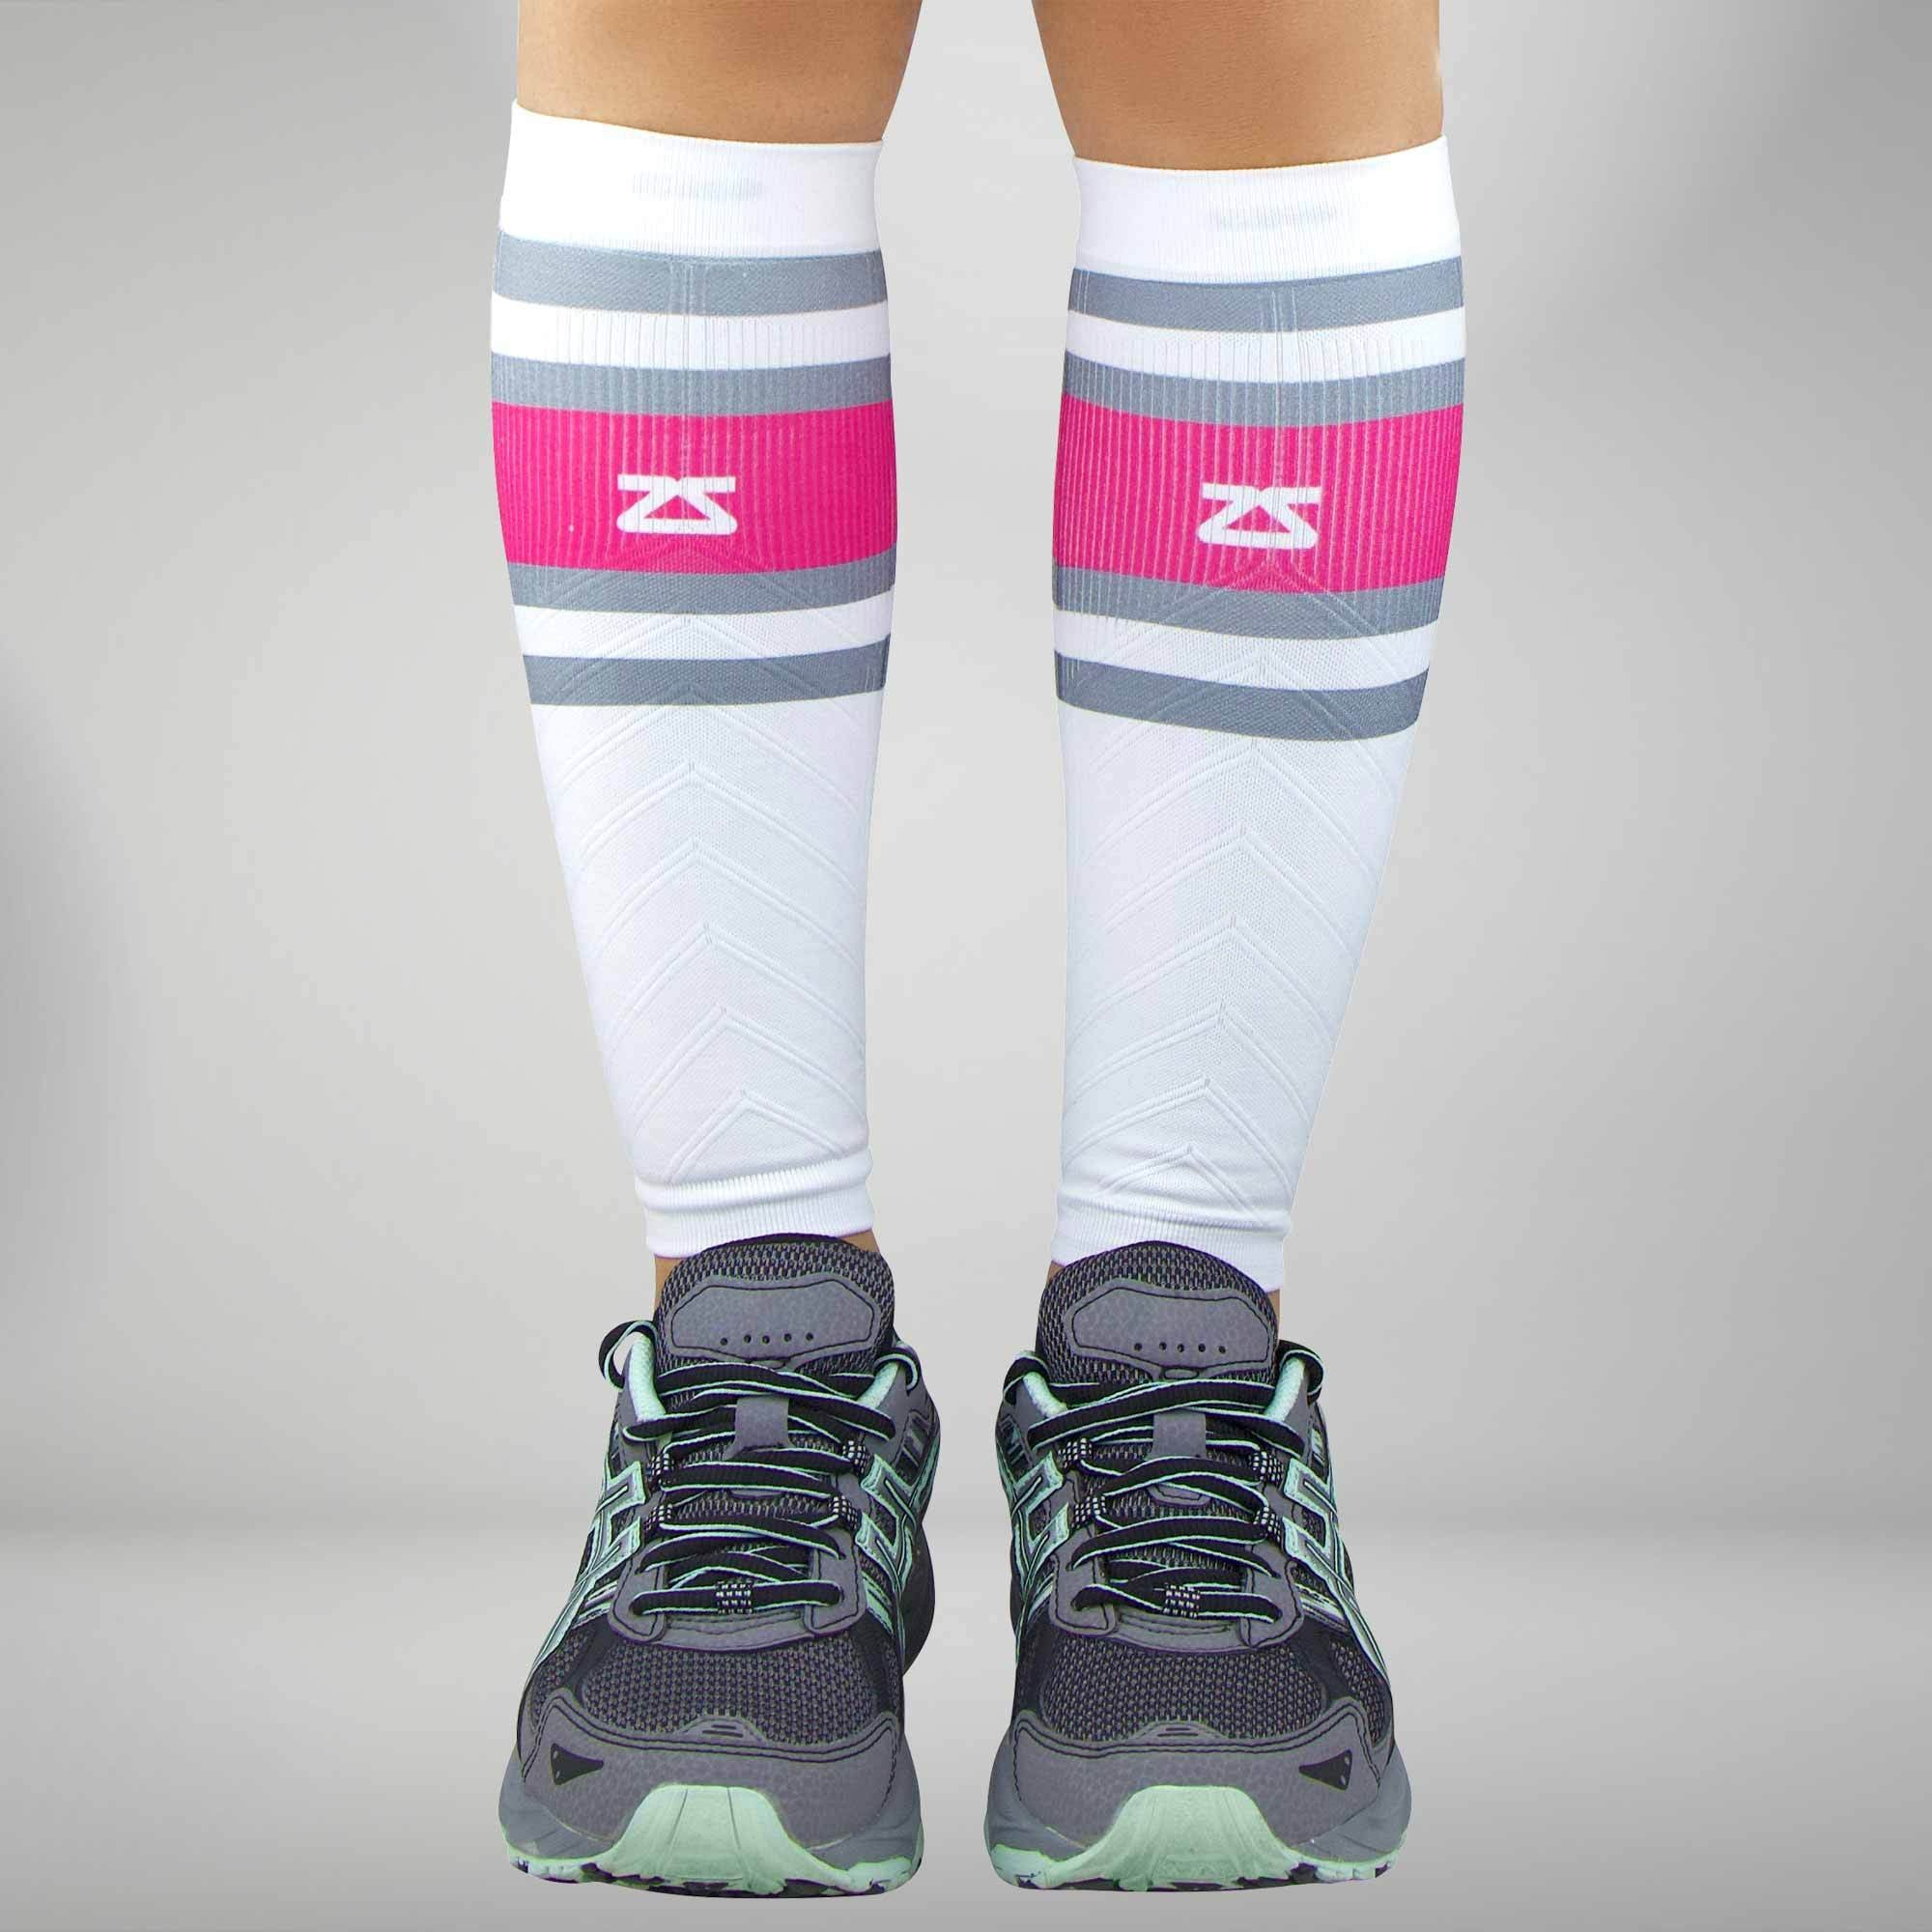 Retro Border Stripes Compression Leg Sleeves